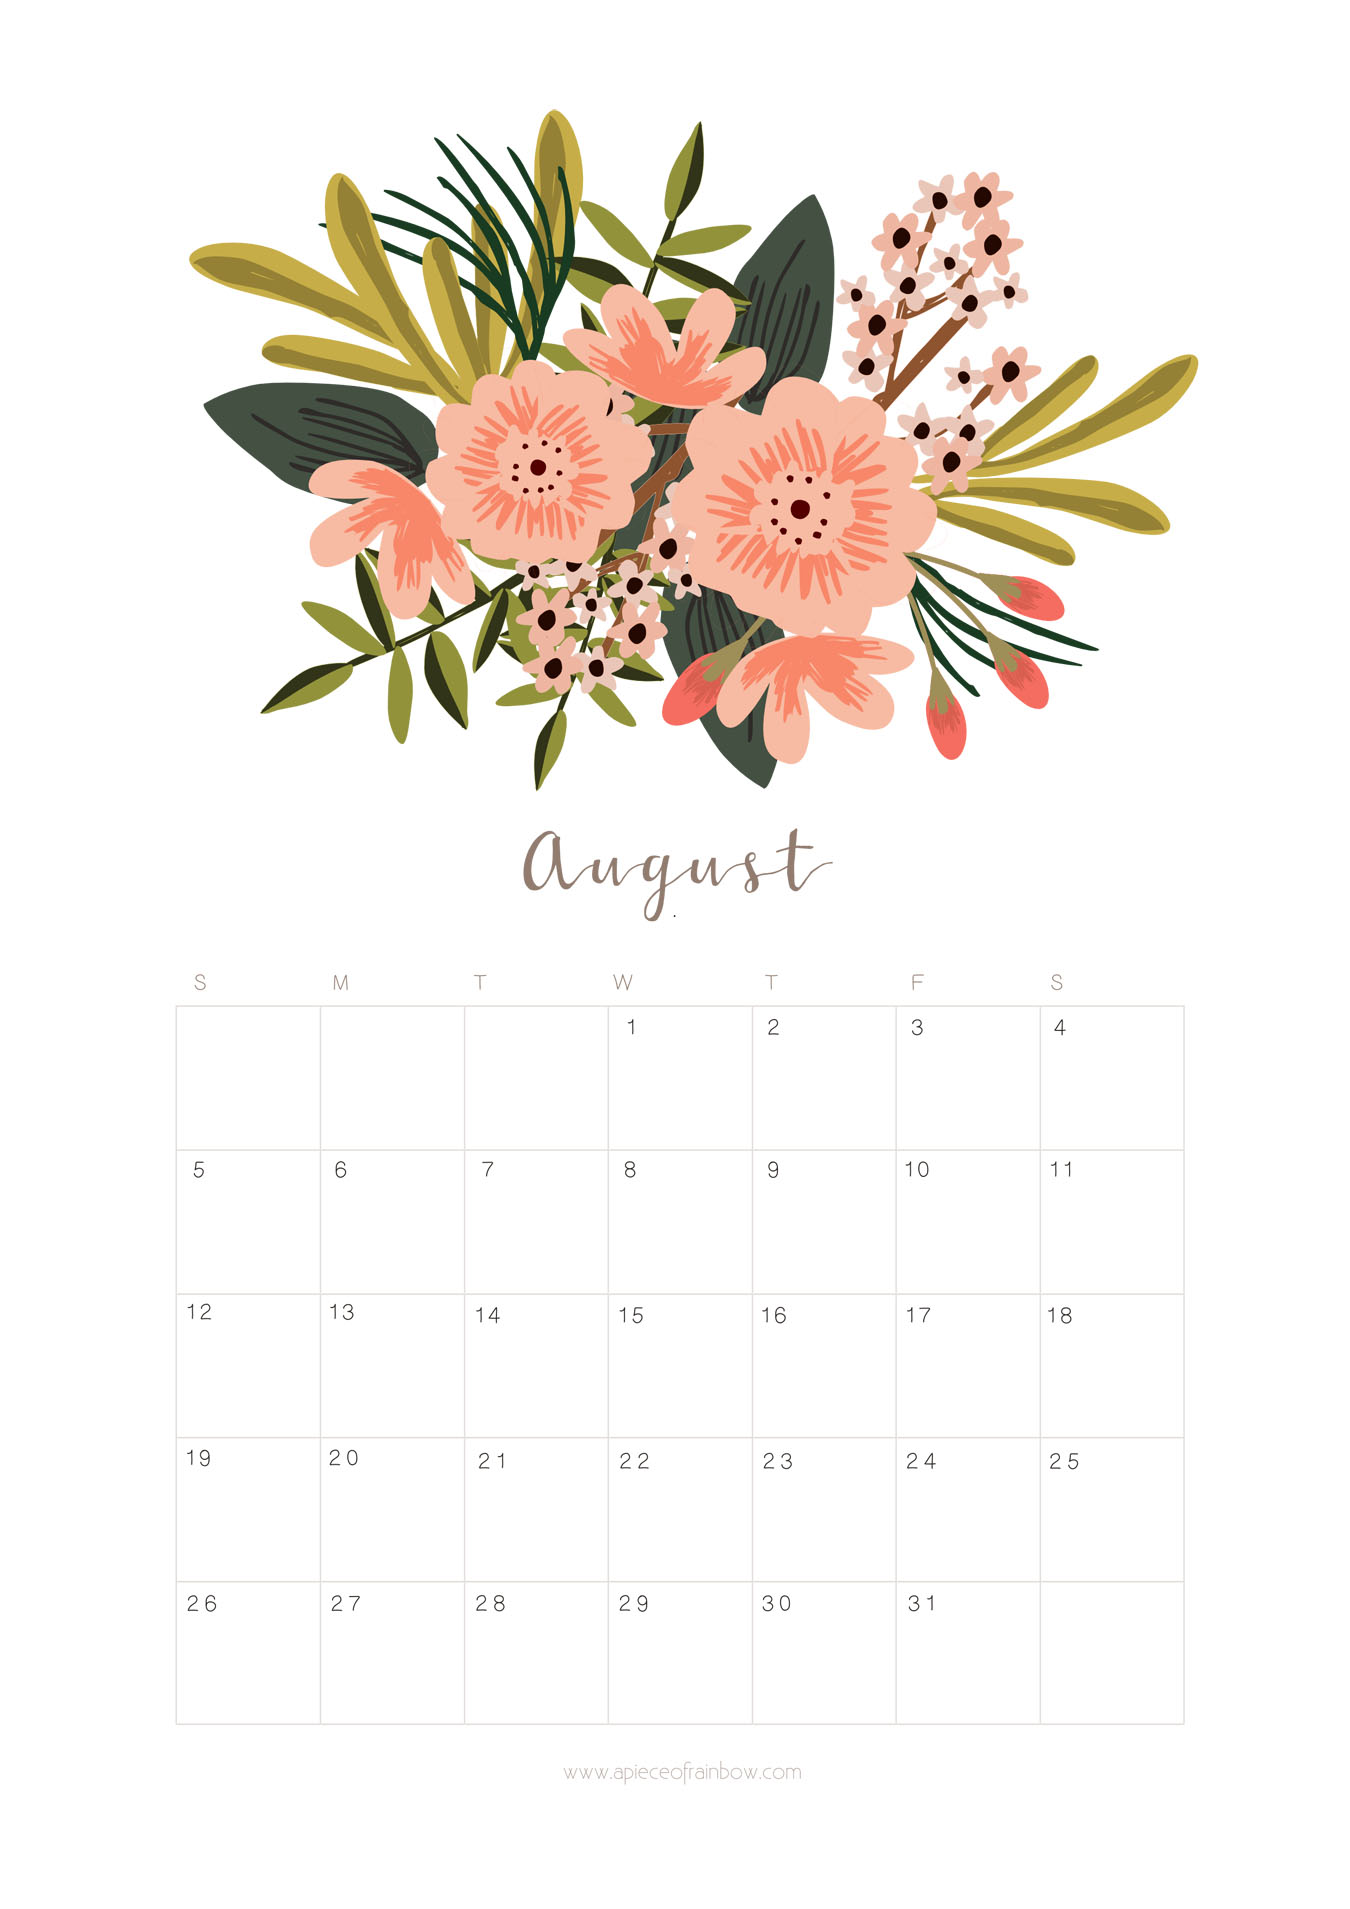 graphic relating to Printable Monthly Calendar August titled Printable August 2018 Calendar Month-to-month Planner - Flower